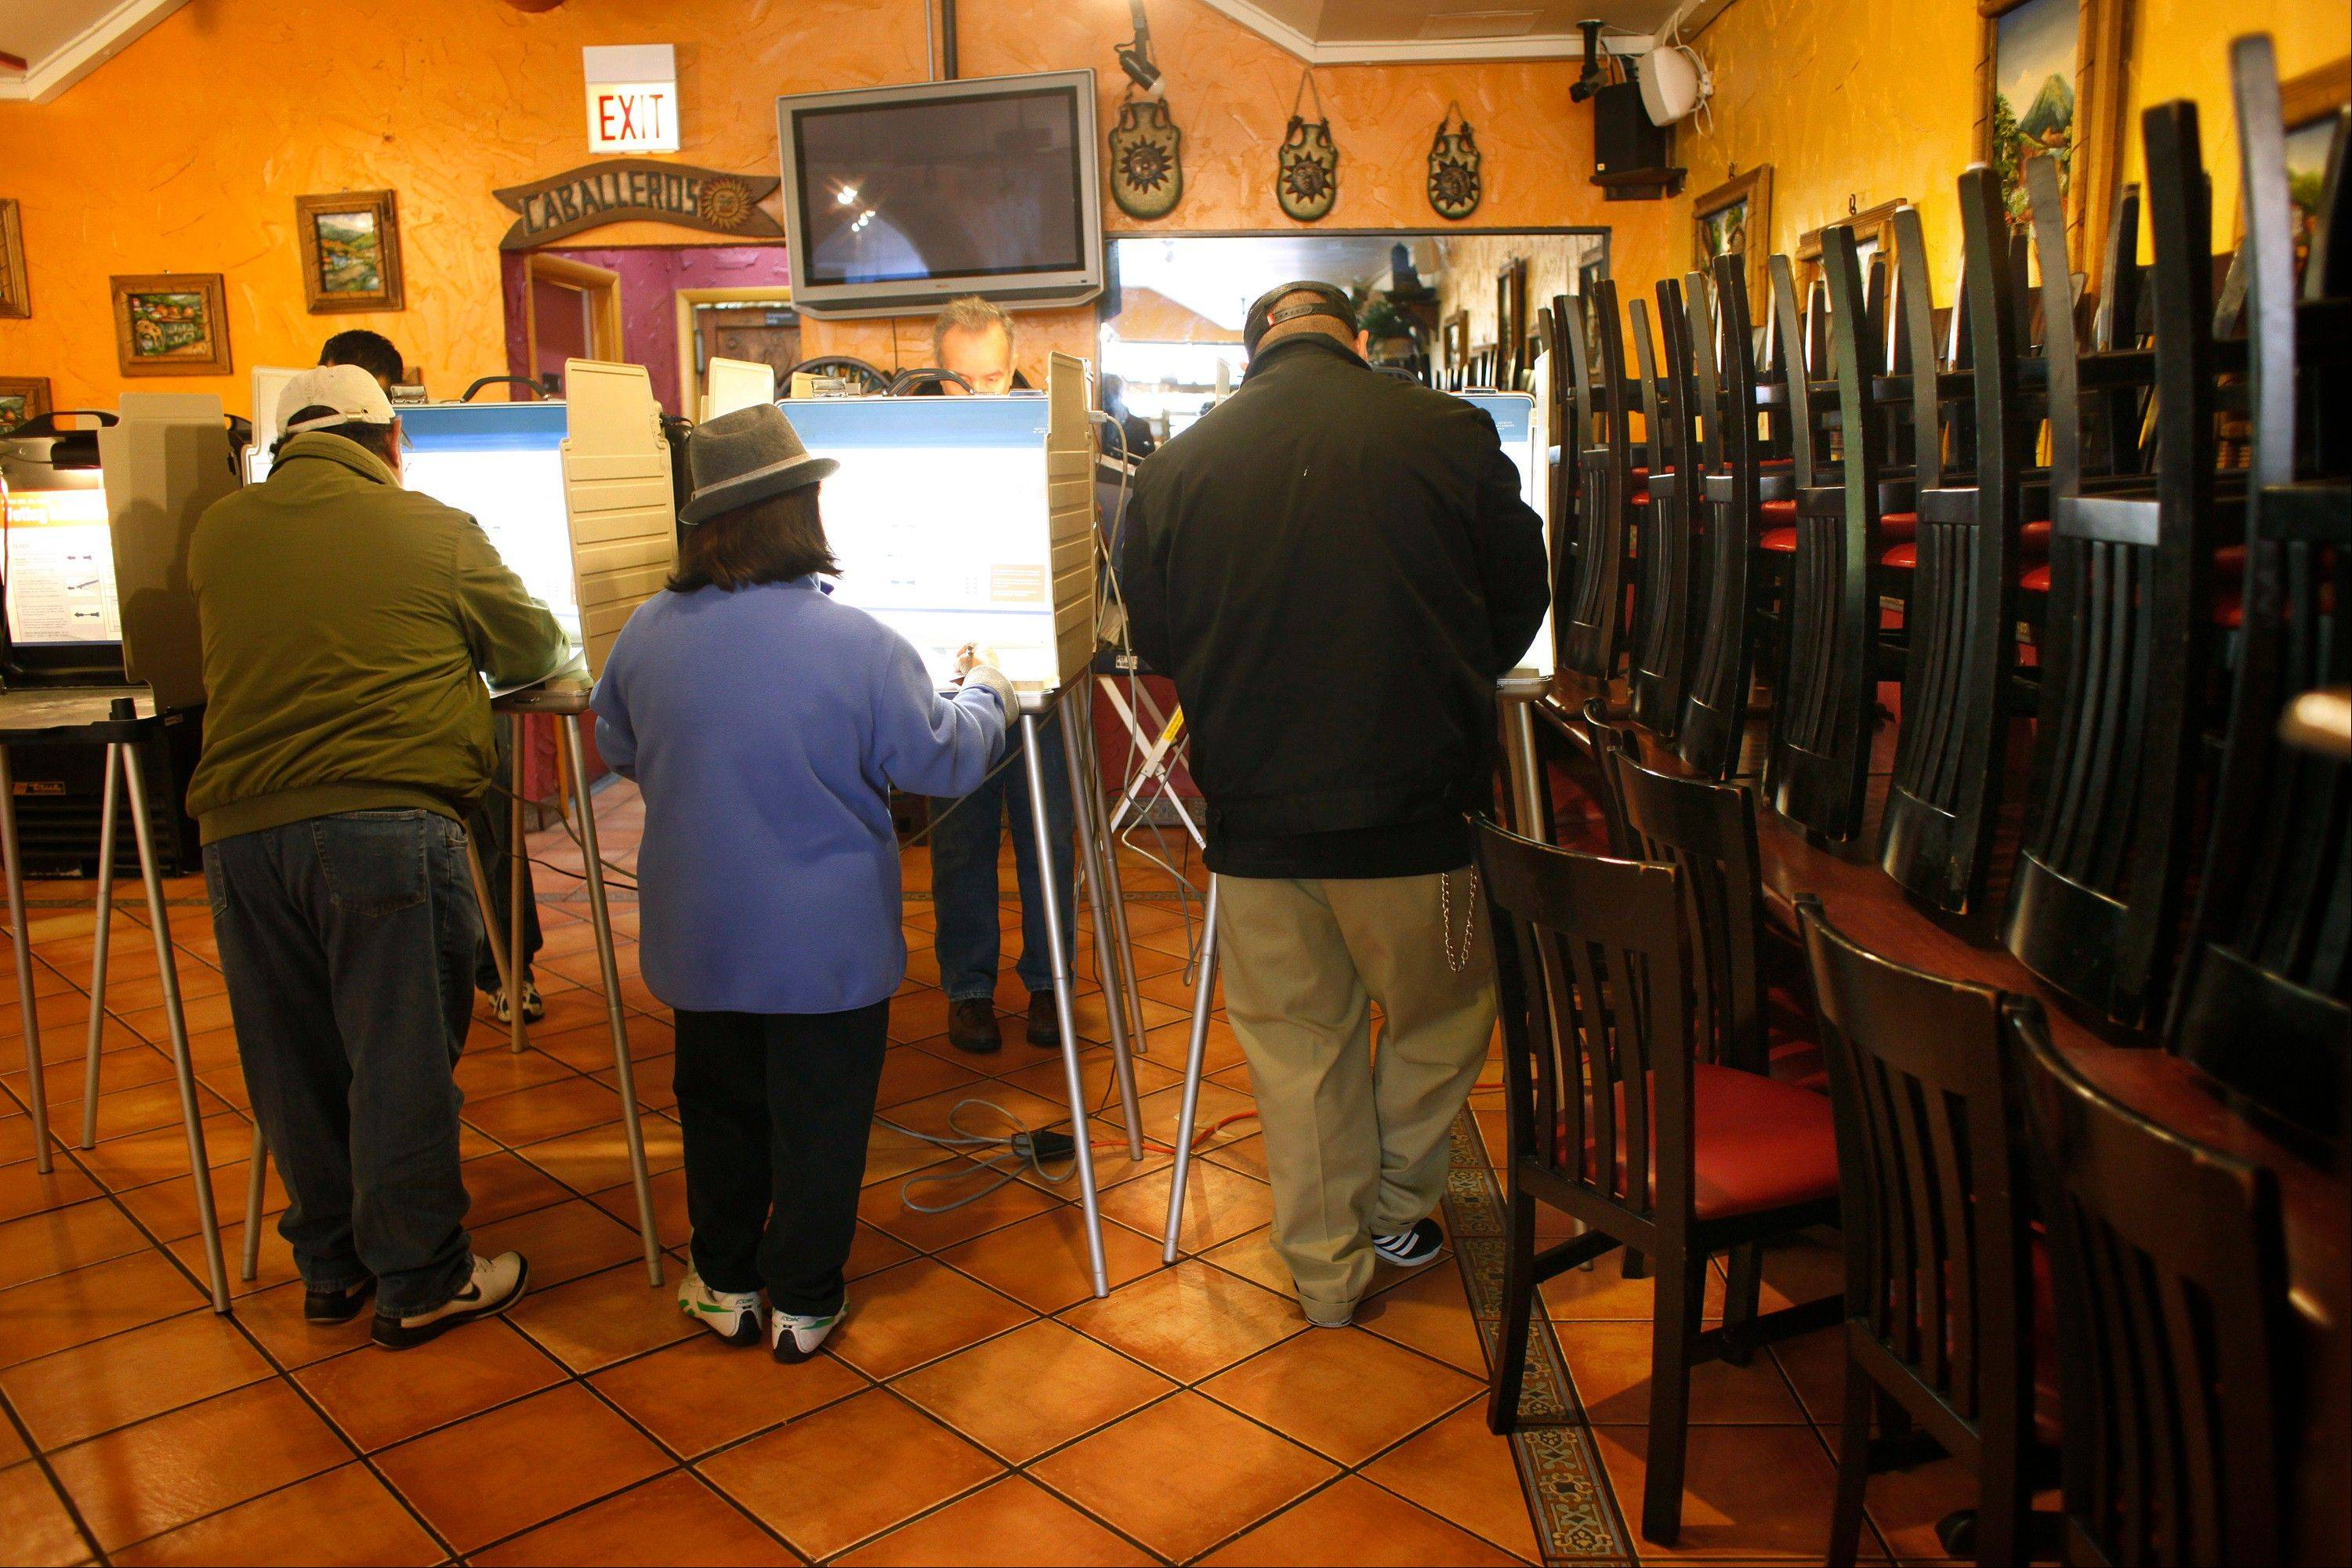 Voters cast their ballots in a Mexican restaurant turned polling place, on election day on the South Side of Chicago Tuesday Nov. 6, 2012.